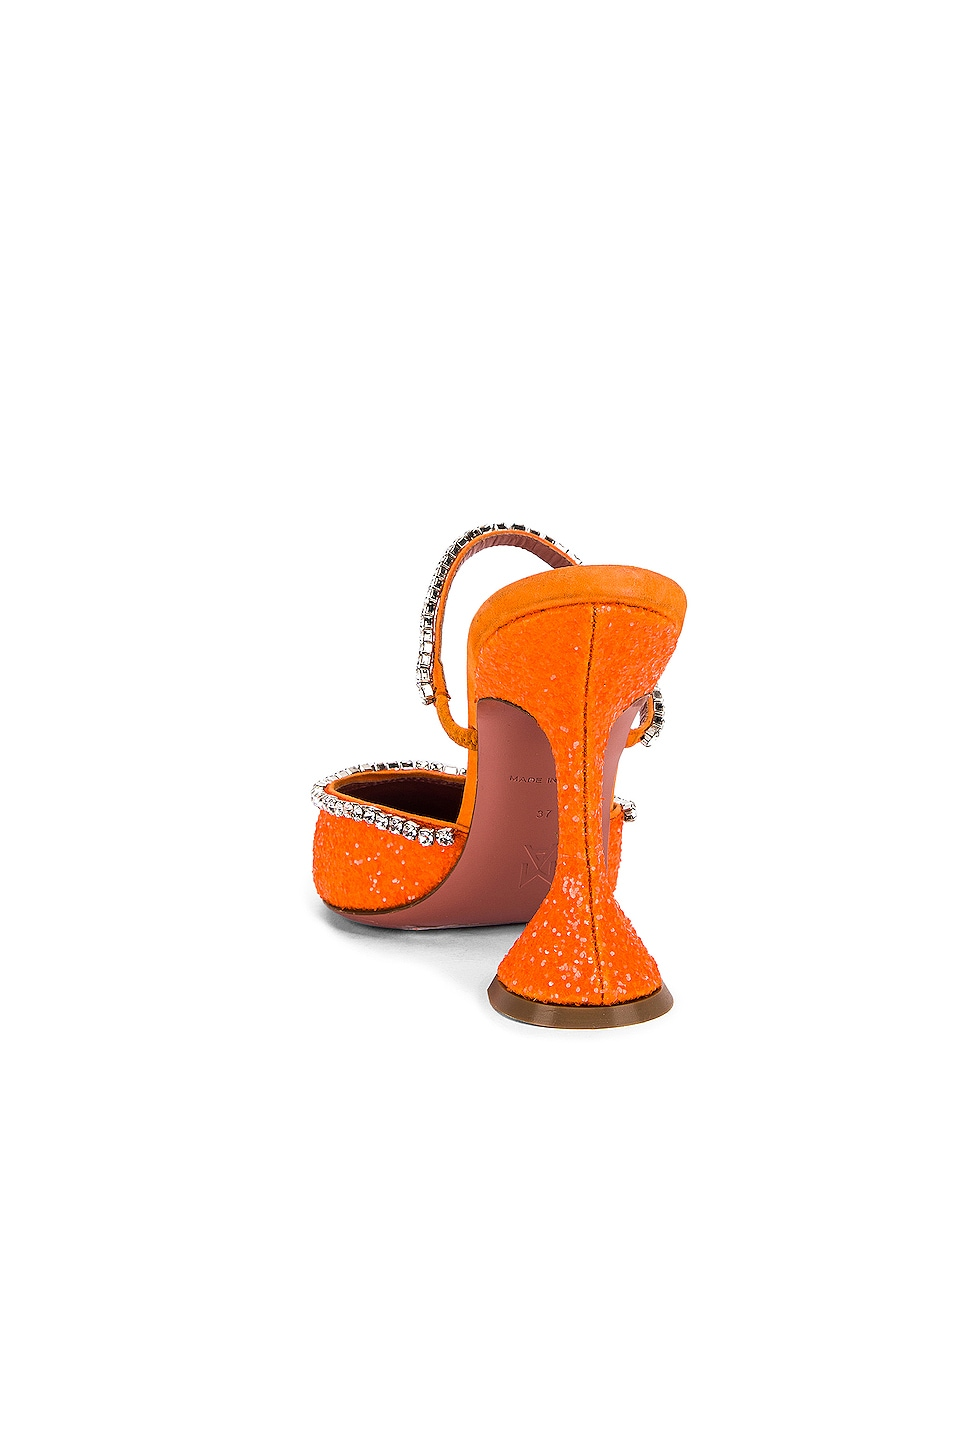 Image 3 of AMINA MUADDI Gilda Mule in Orange Fluo Glitter